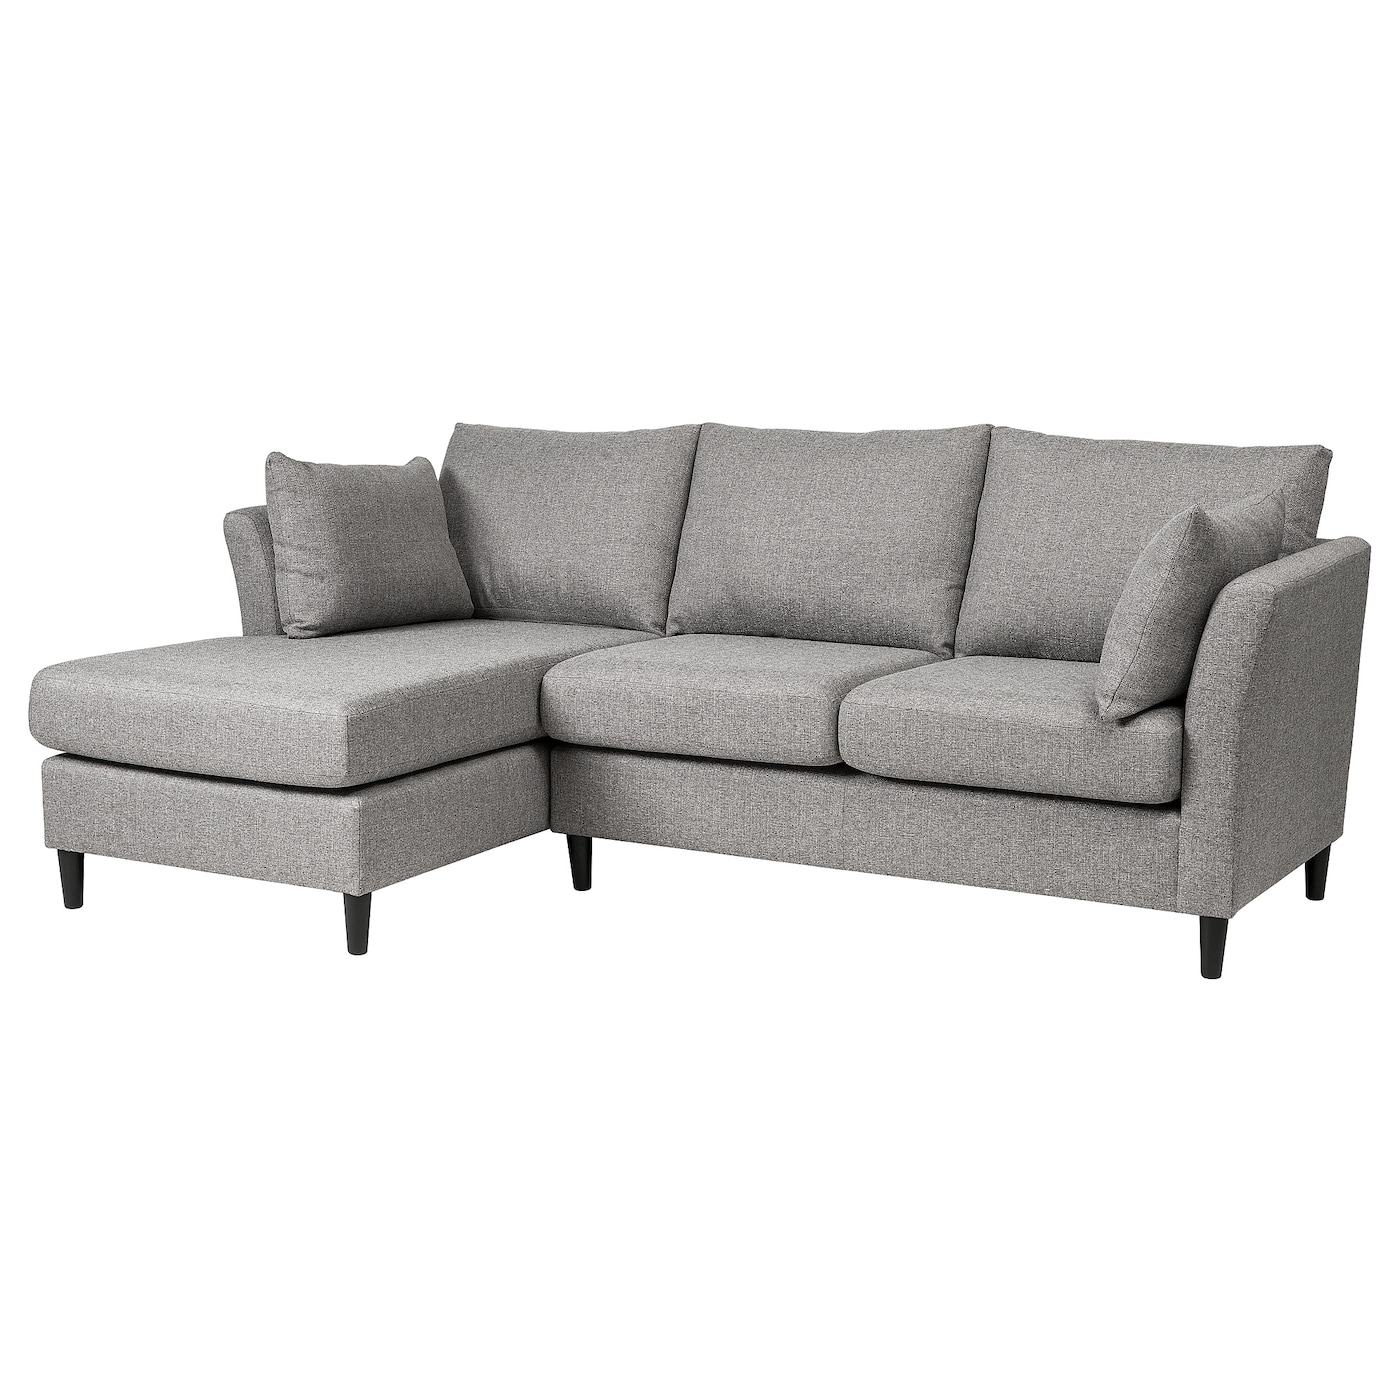 Bankeryd 2 seat sofa w chaise longue left grey ikea for 2 seater chaise sofa